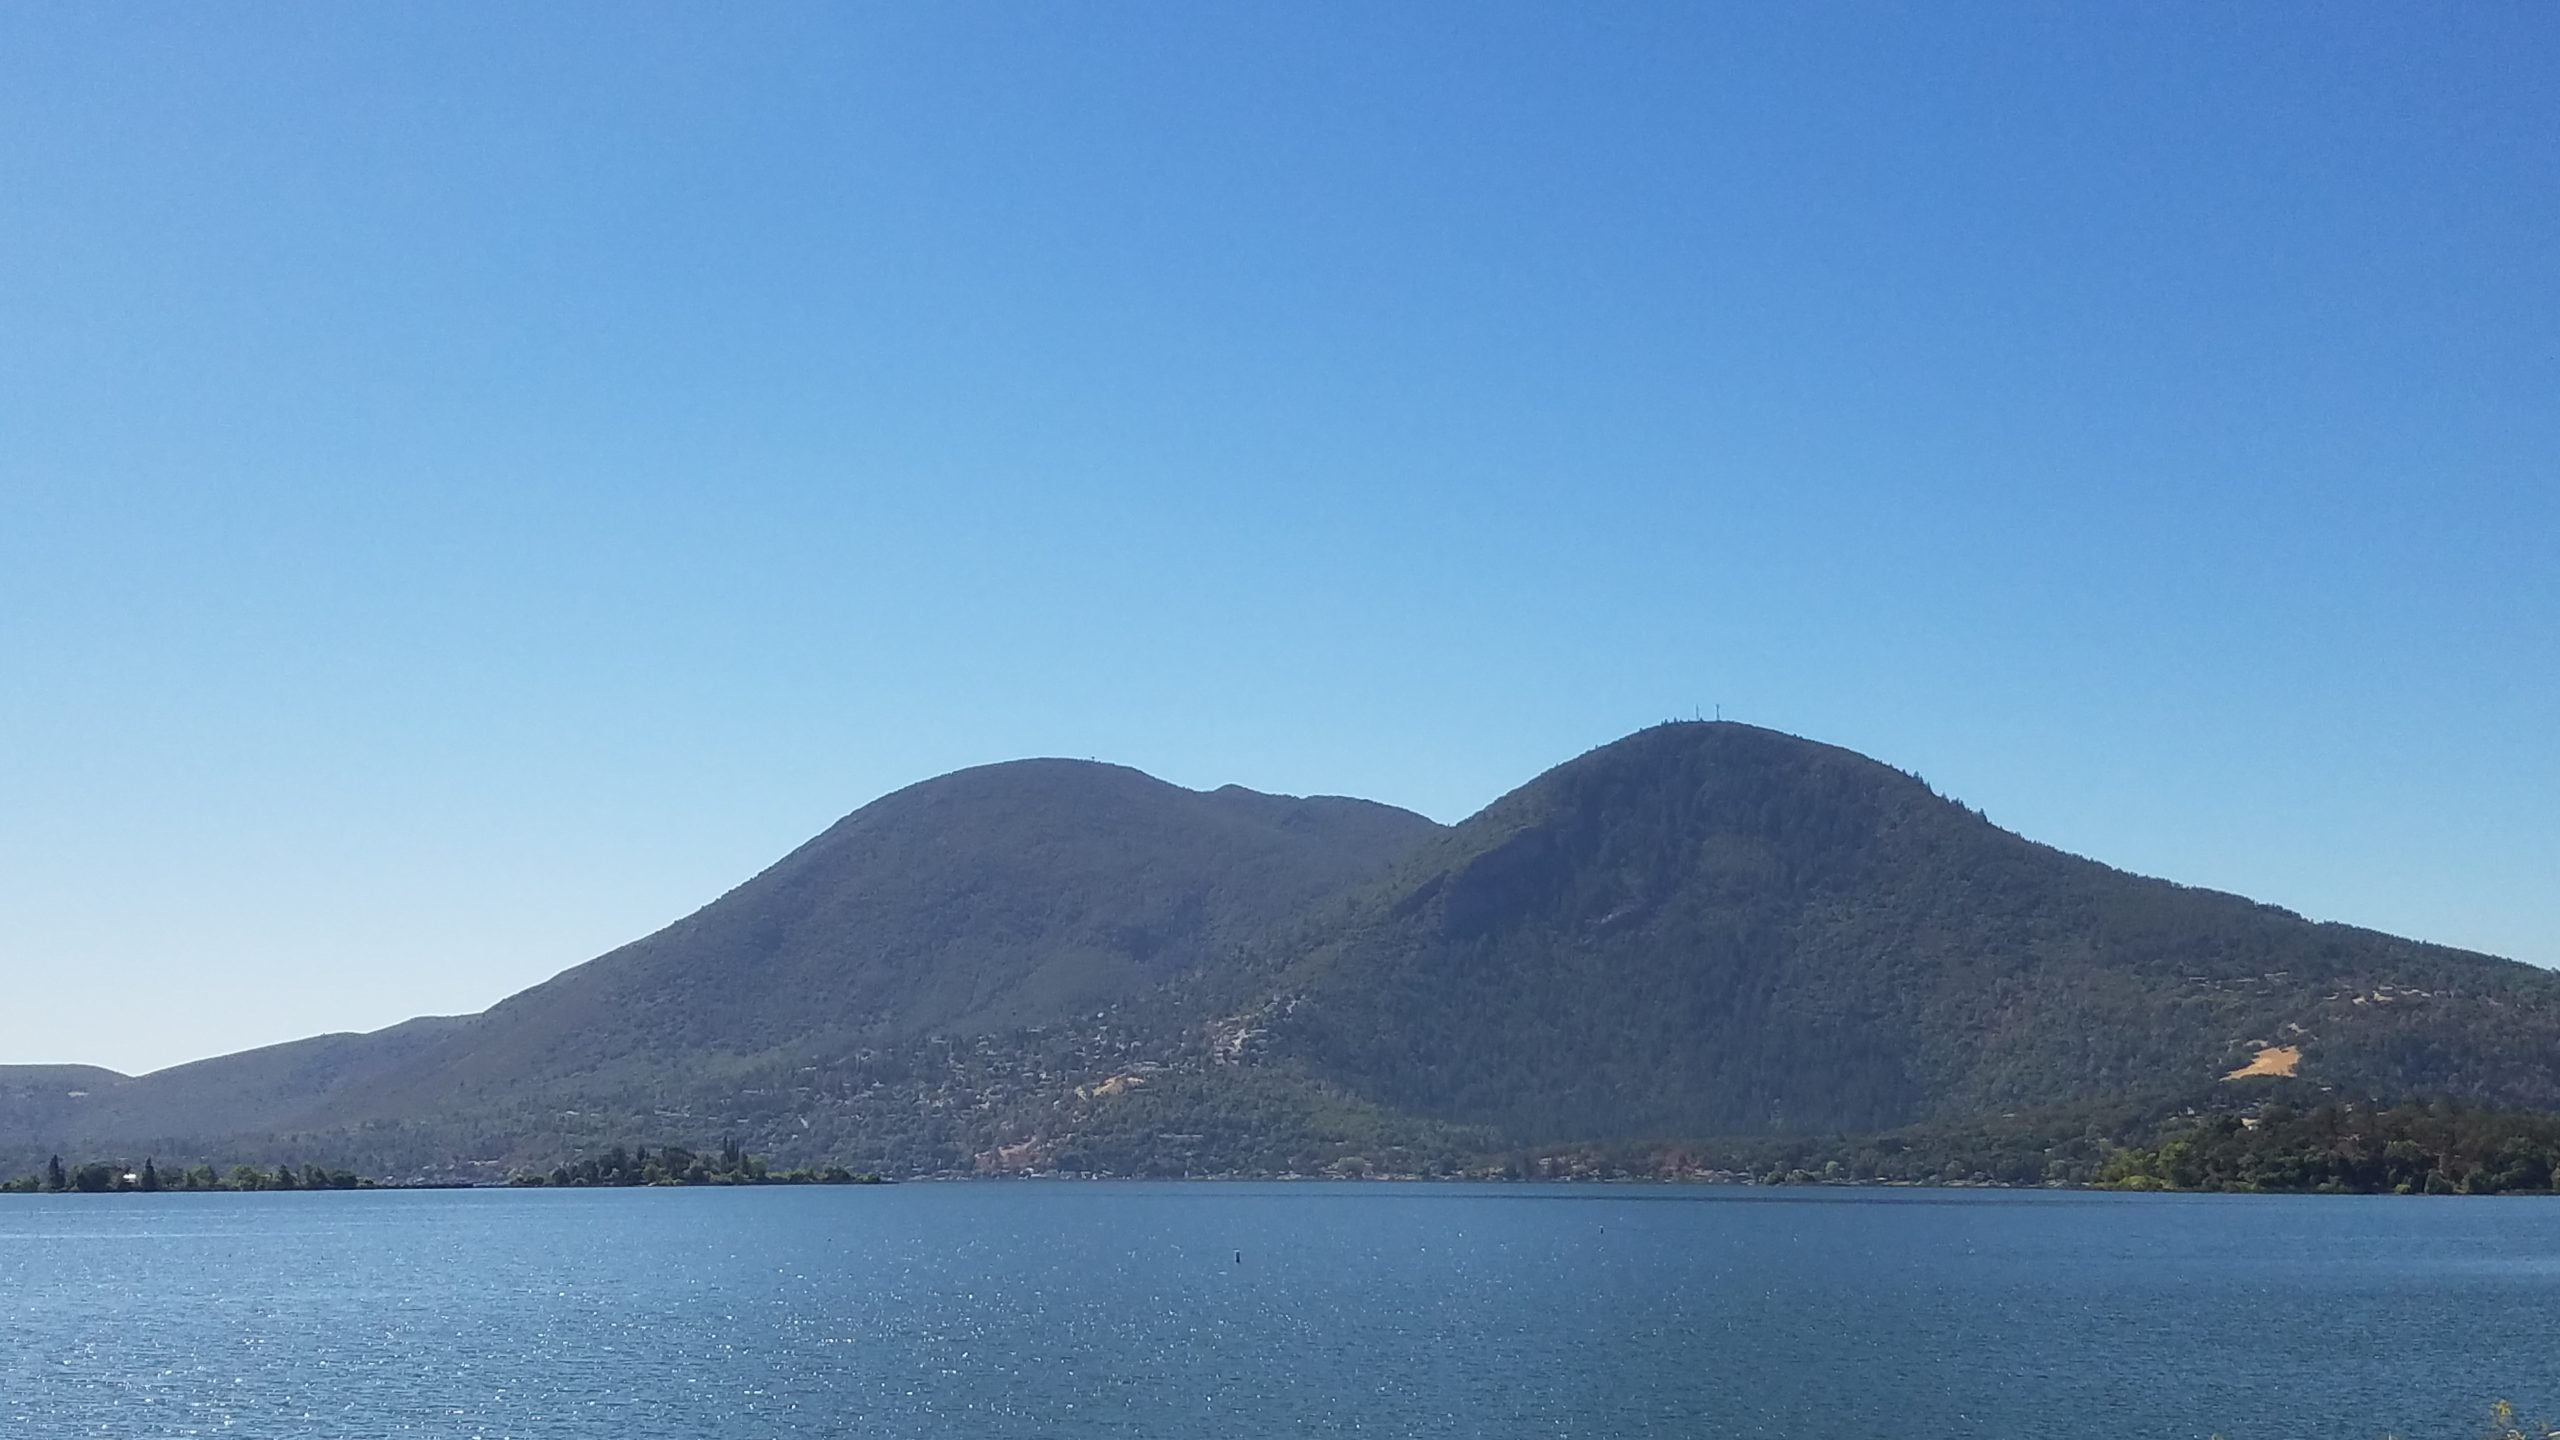 Konocti From Clearlake